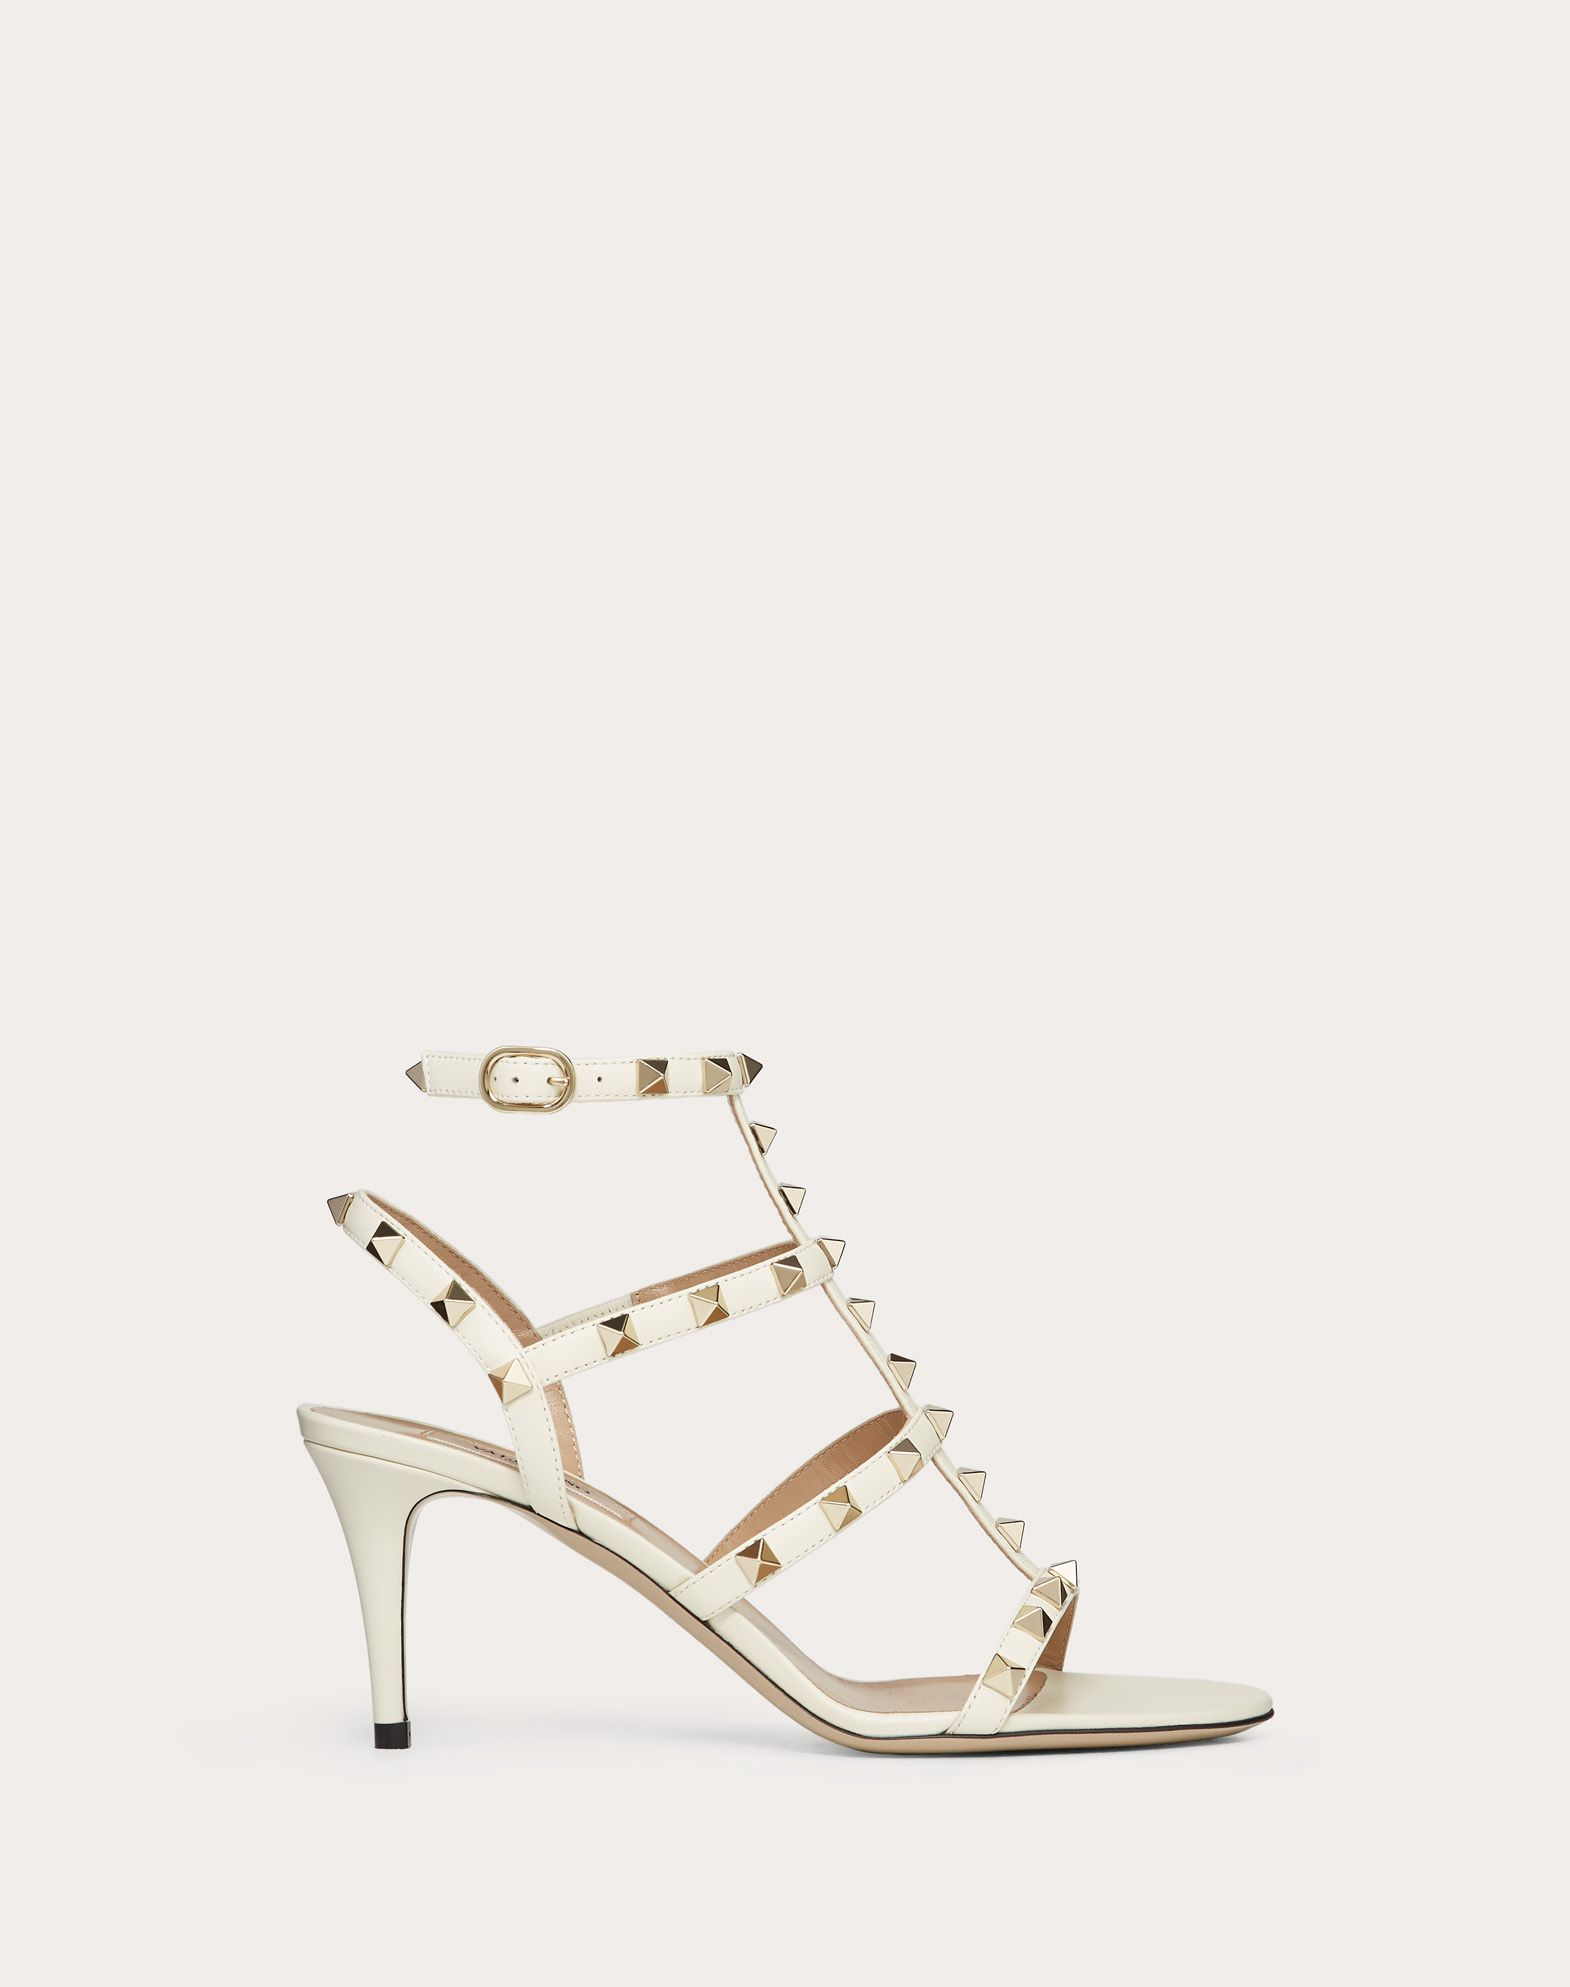 Sandalo Rockstud in vitello con cinturini 70mm